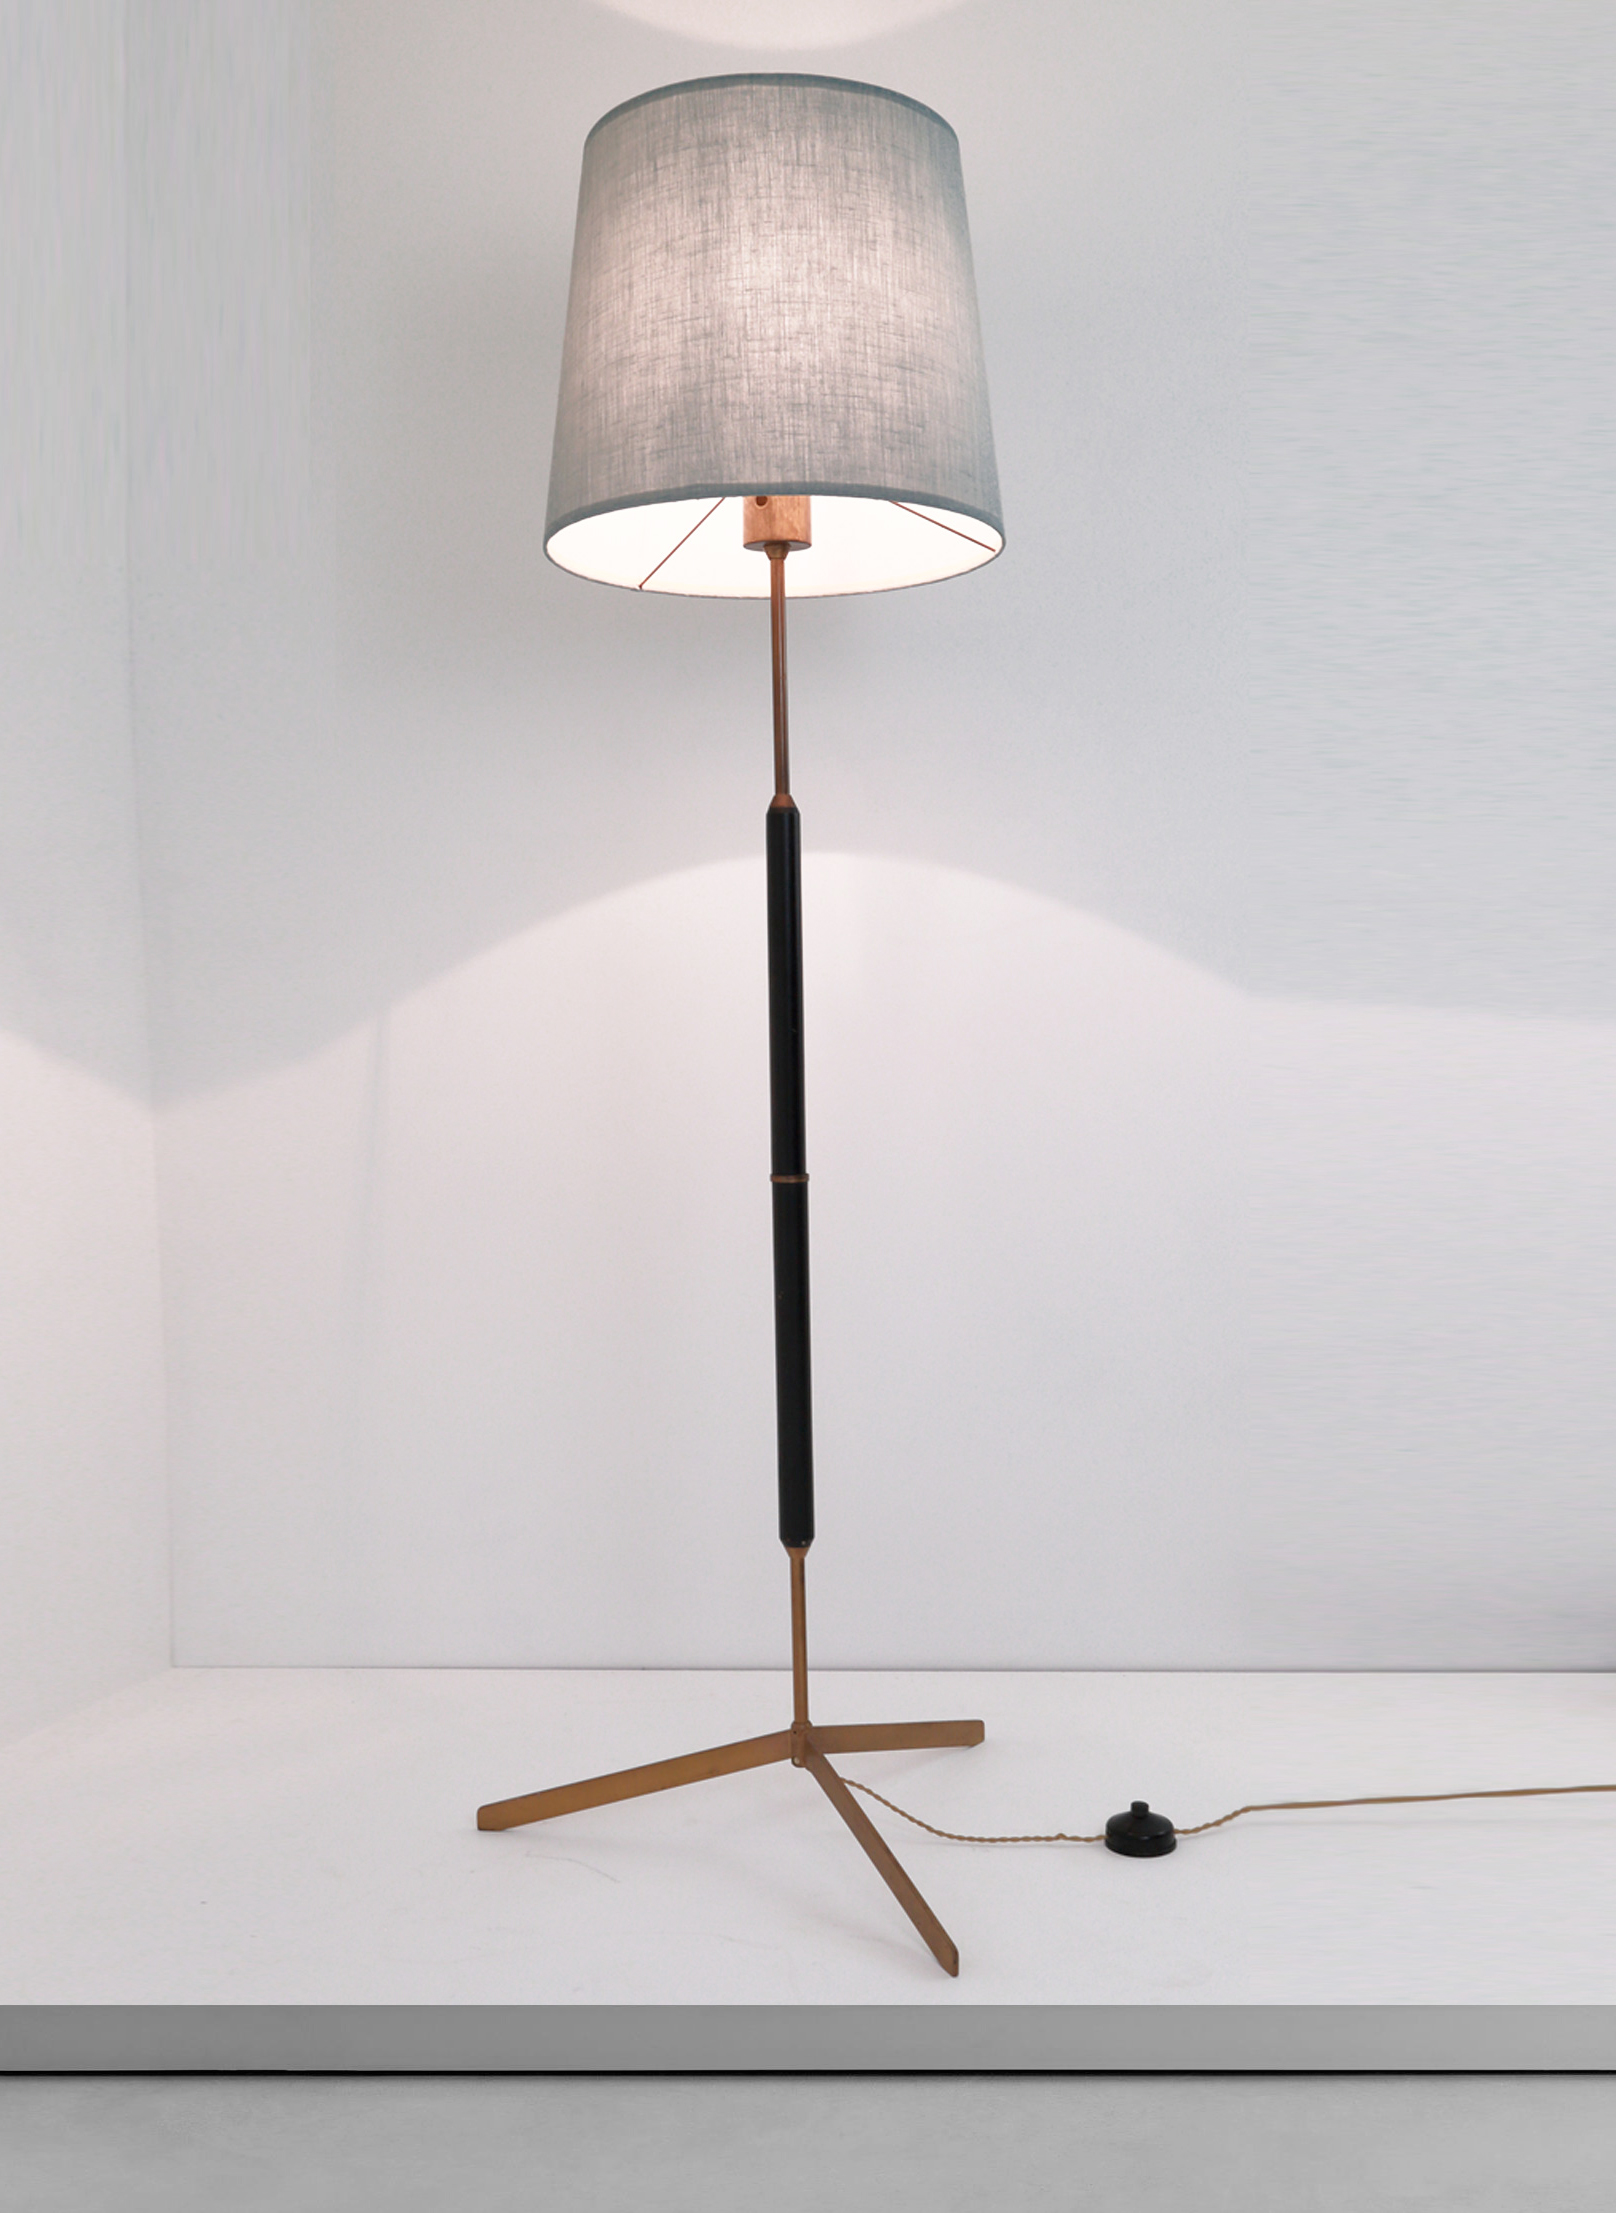 Bergbom 1950s Swedish Floor Lamp Cupio Gallery